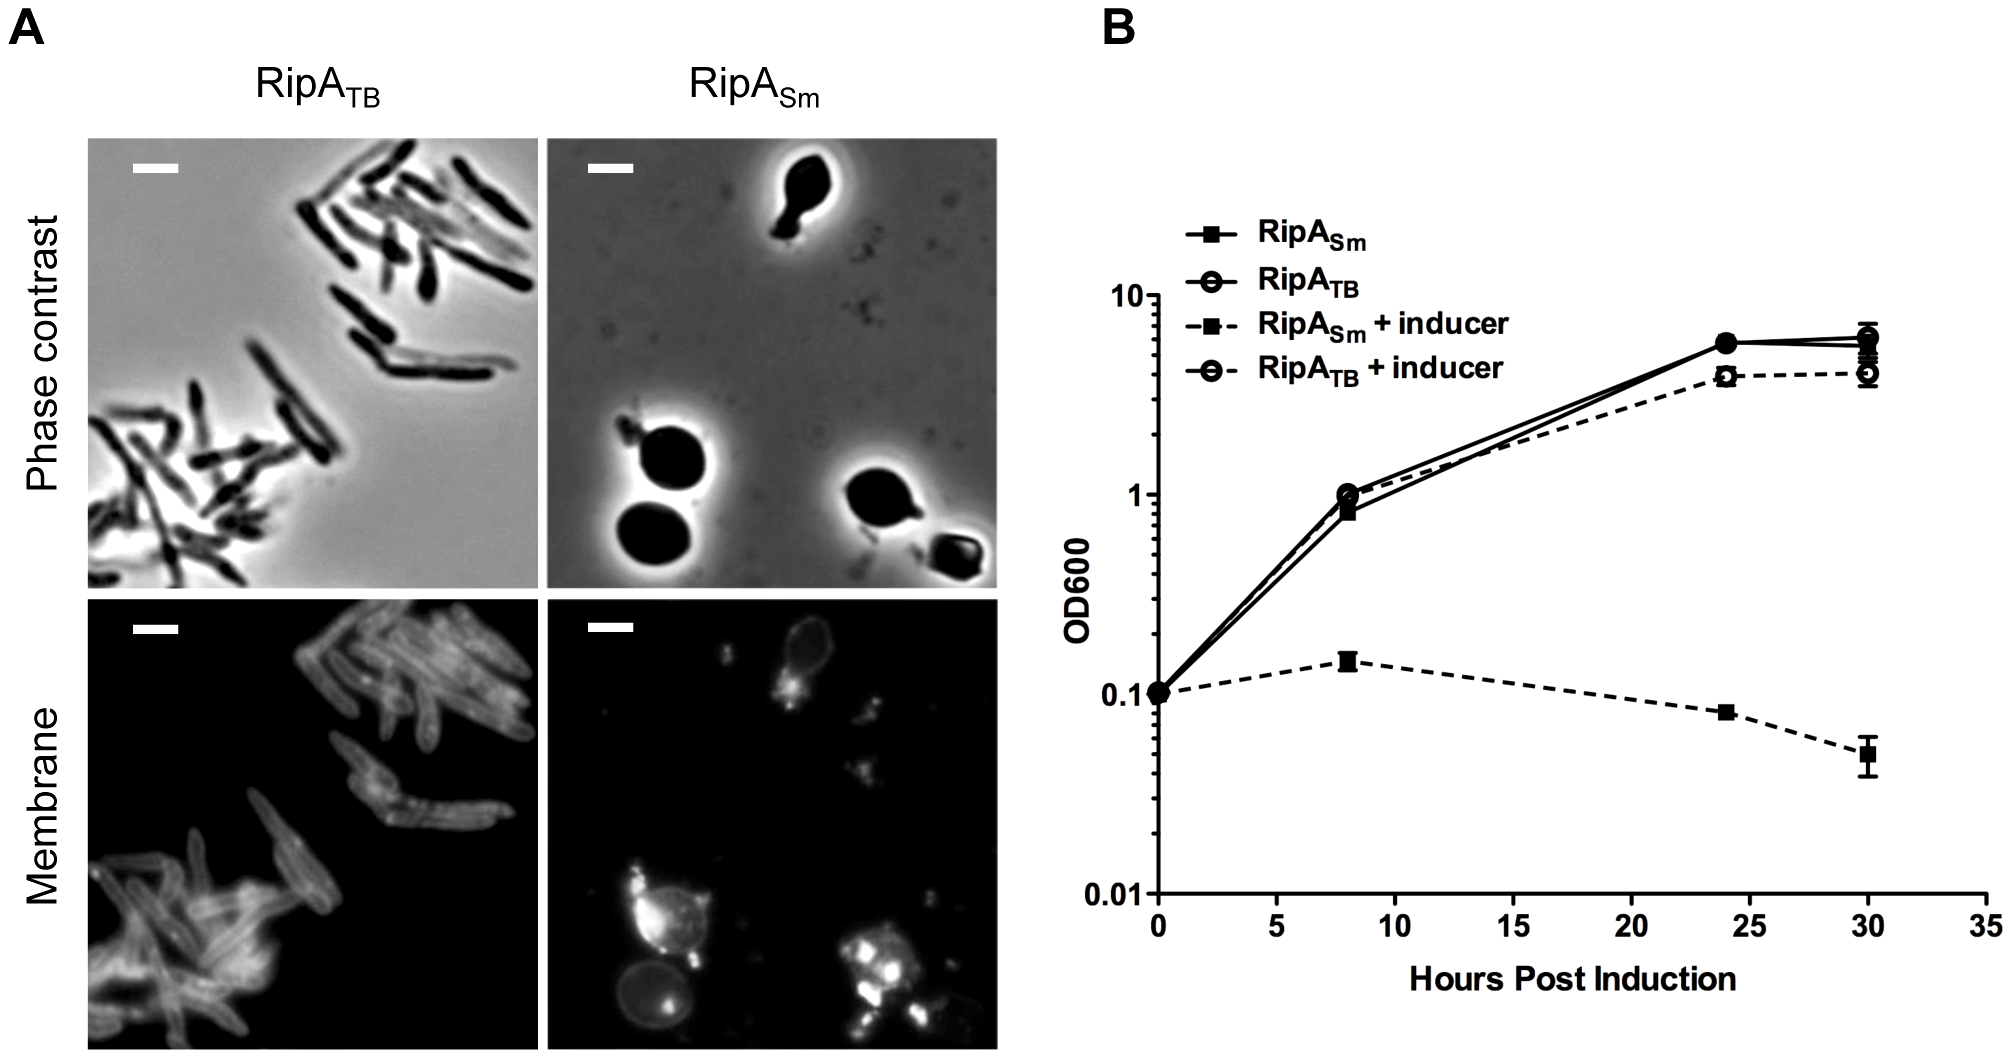 RipA is differentially active in a species-specific manner.